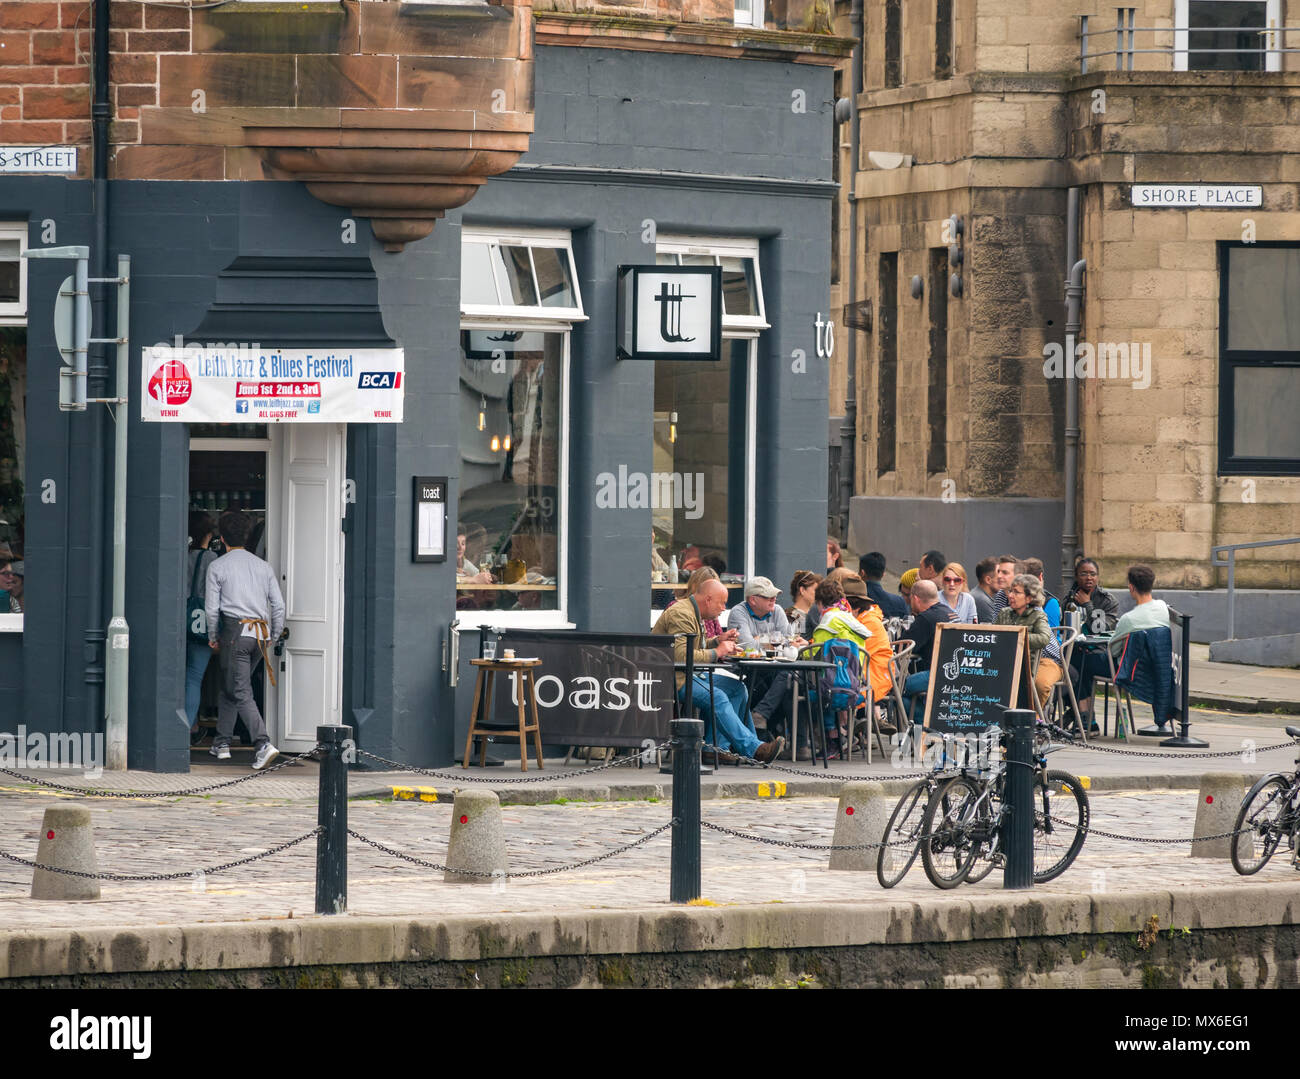 Leith Jazz & Blues Festival live music in restaurants and bars by the Water of  Leith, 3rd June 2018. The Shore, Leith, Edinburgh, Scotland, United Kingdom. The jazz and blues festival takes place over 3 weekend days. People throng the outdoor pavement tables of the restaurants and bars along the Water of Leith enjoying listening to the free live music. People at the wine bar and restaurant called Toast with the festival banner displayed - Stock Image